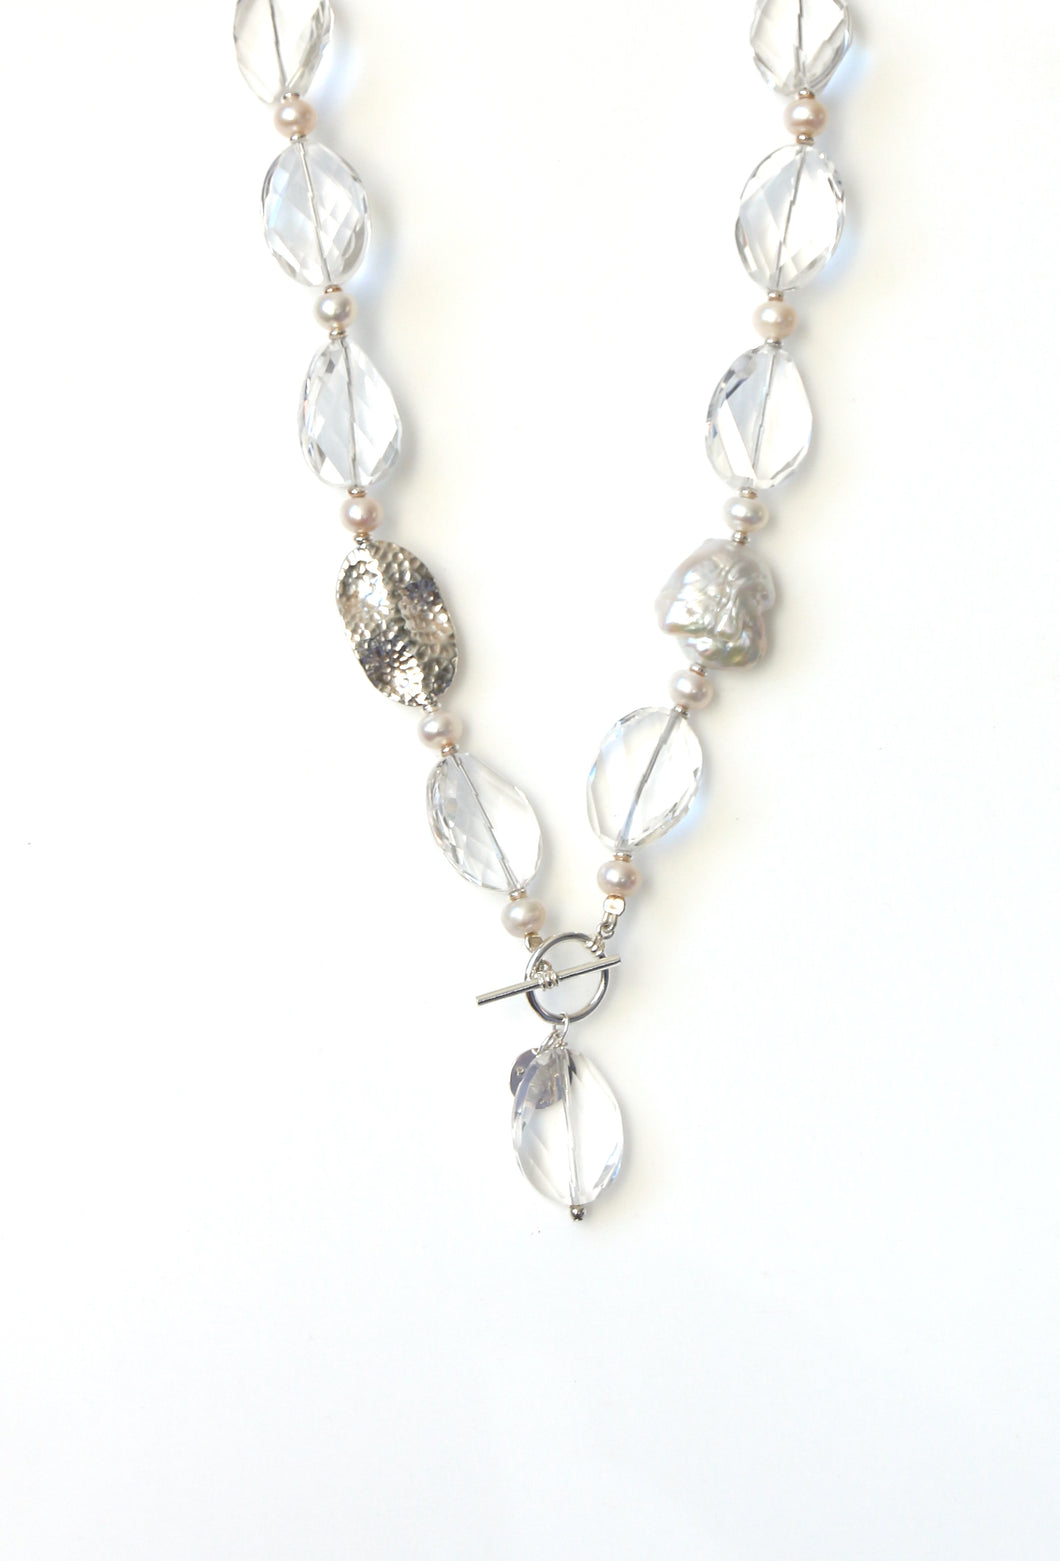 Australian Handmade Crystal Quartz Fob Necklace with Facetted Crystal Quartz Baroque Pearl Pearls and Sterling Silver